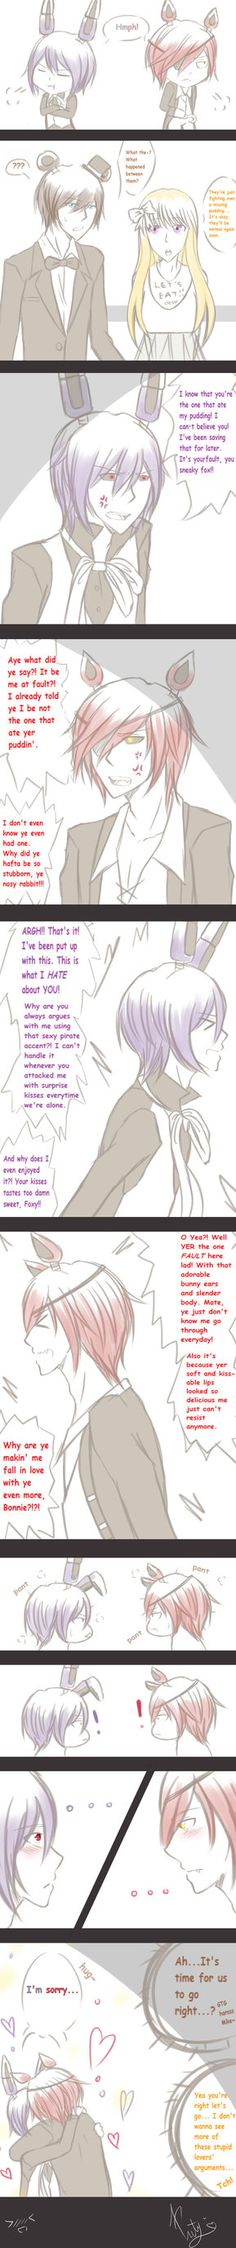 Fonnie - Missing Pudding by SaitouHime145 on DeviantArt